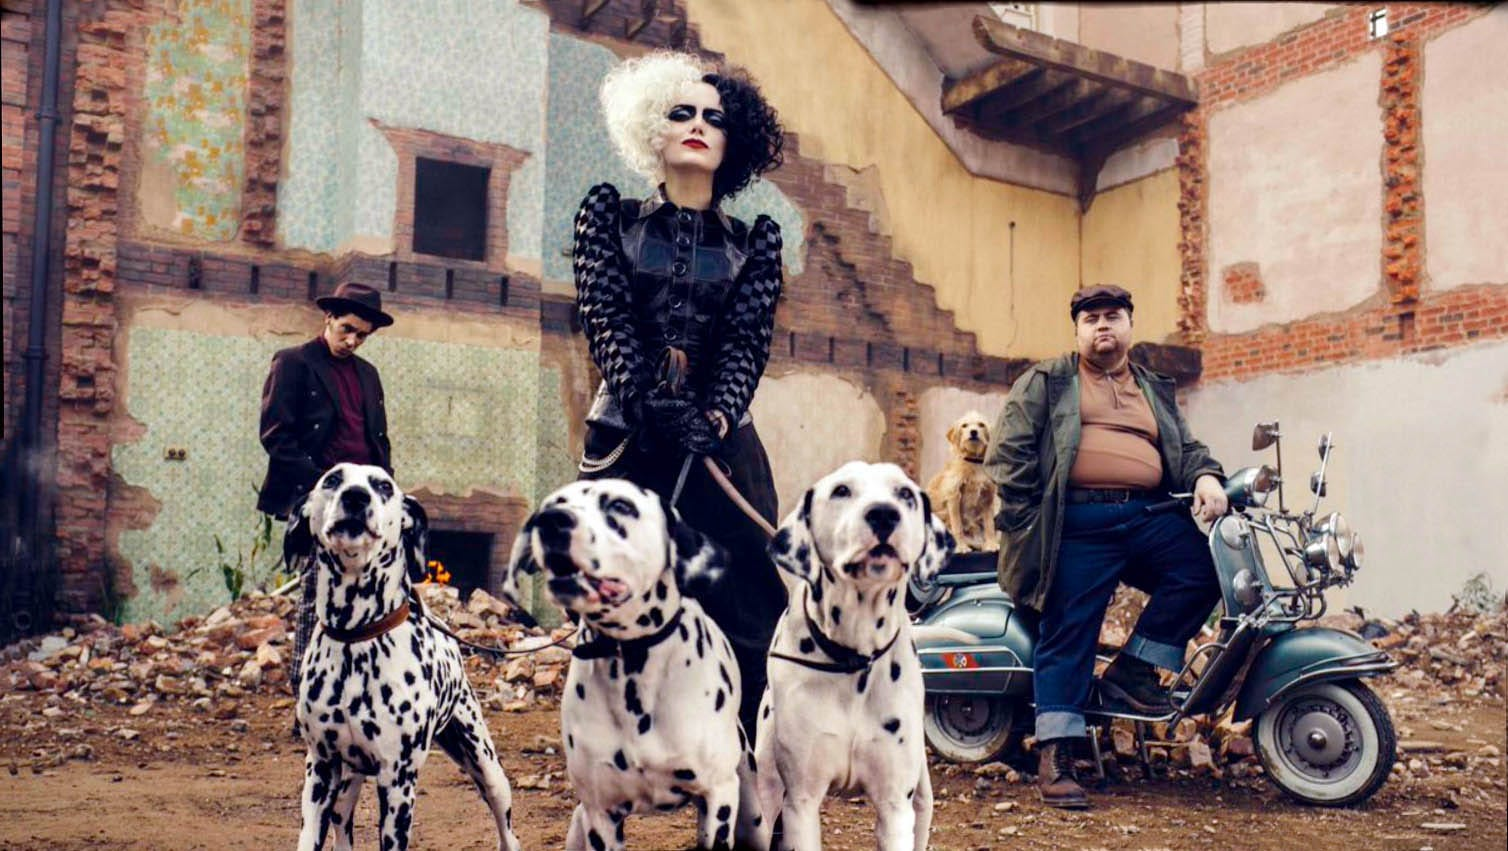 Cruella just doesn't work despite its best efforts. It ends up taking itself almost as deadly and pretentiously serious as Joker did.